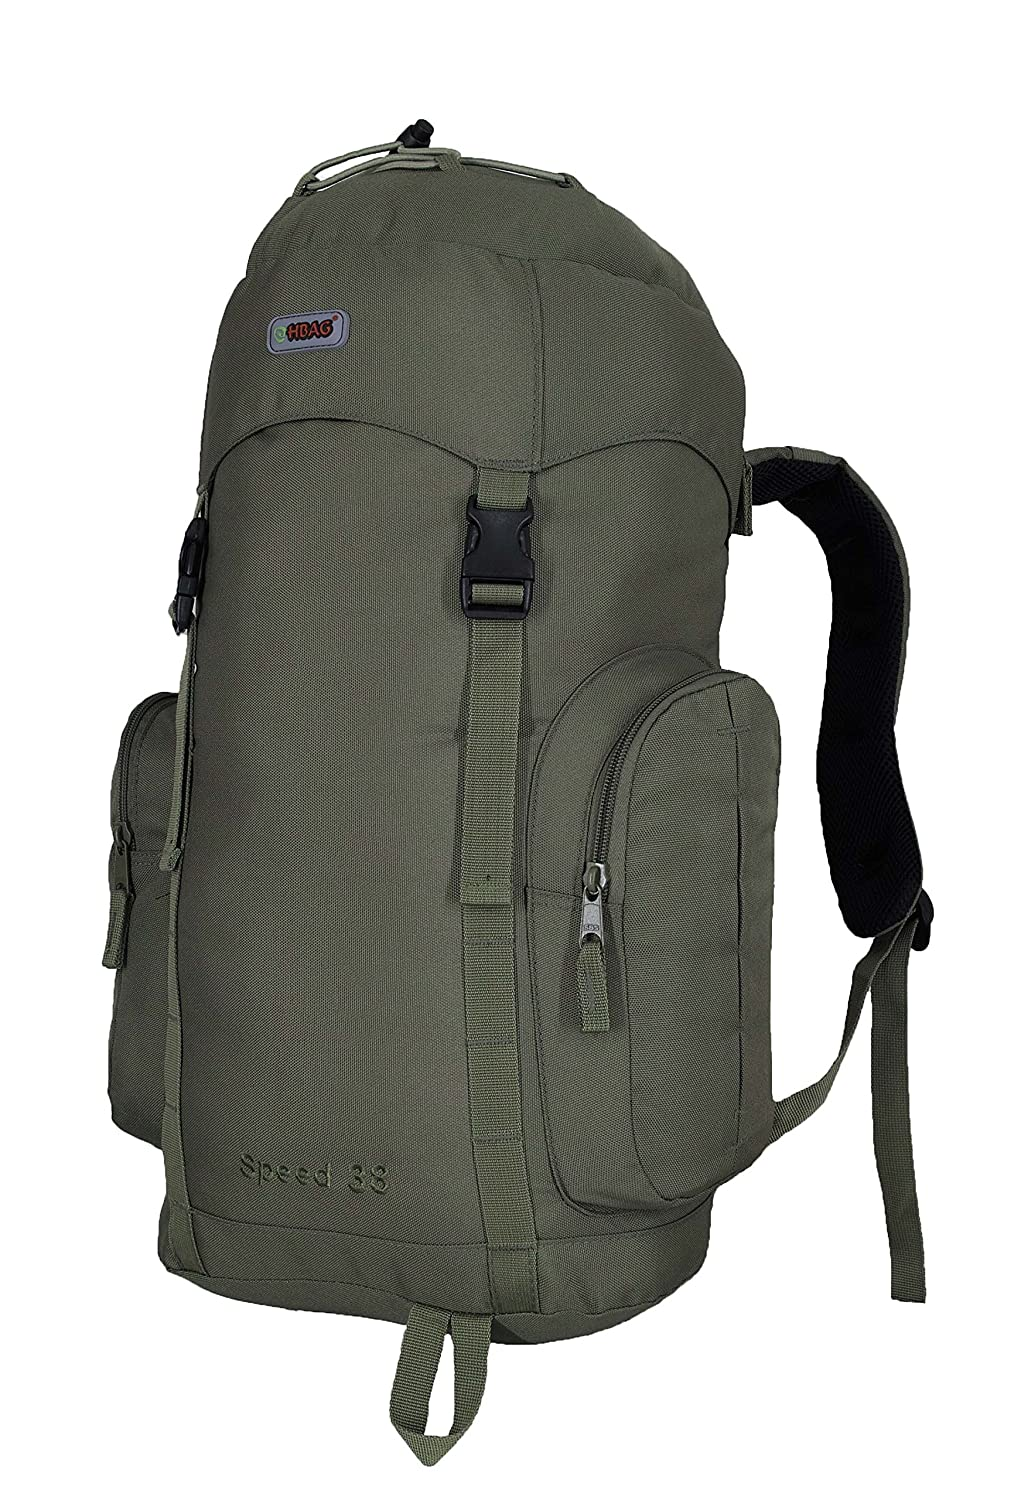 HBAG 30L Army Assault 2 Day Camping Hiking Military Backpack